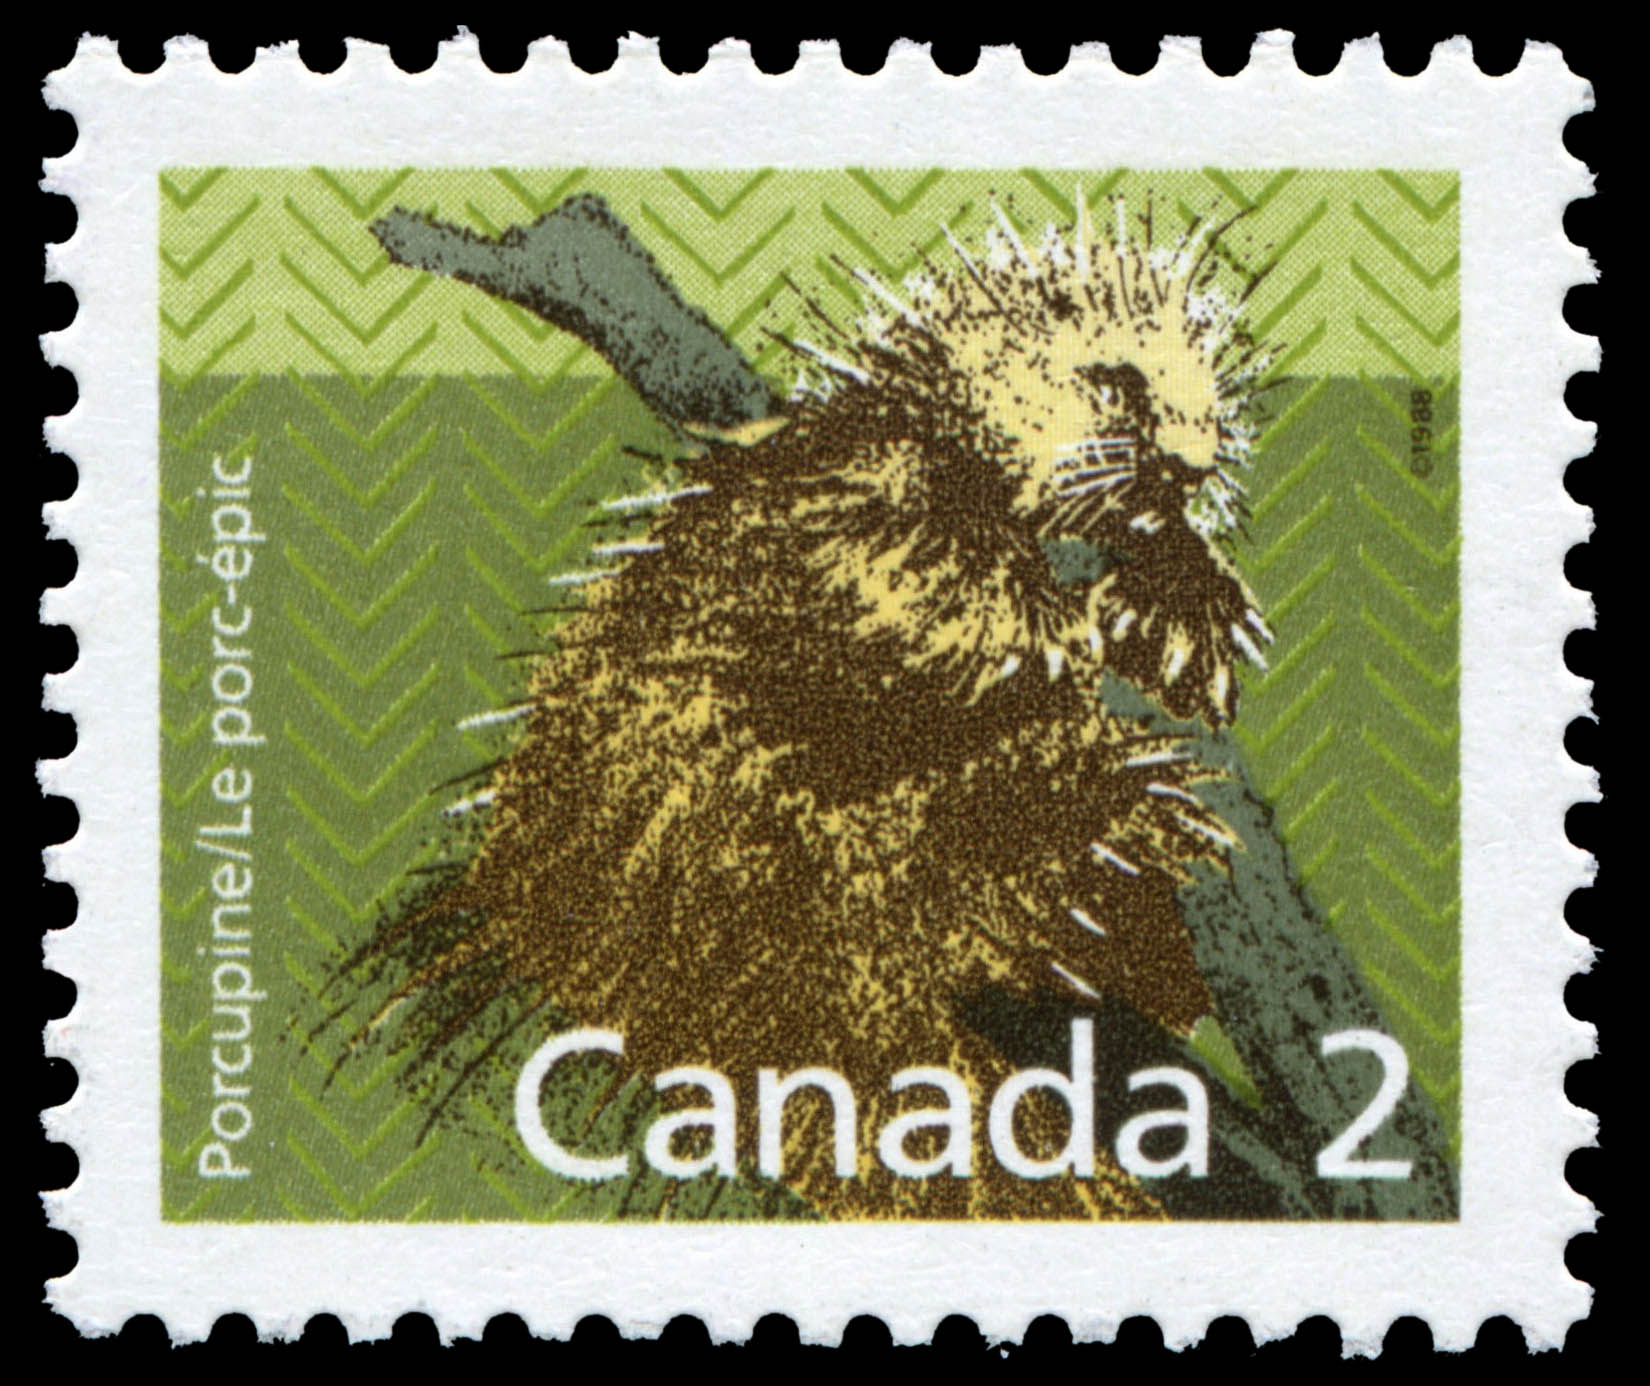 Porcupine Canada Postage Stamp | Small Canadian Mammals